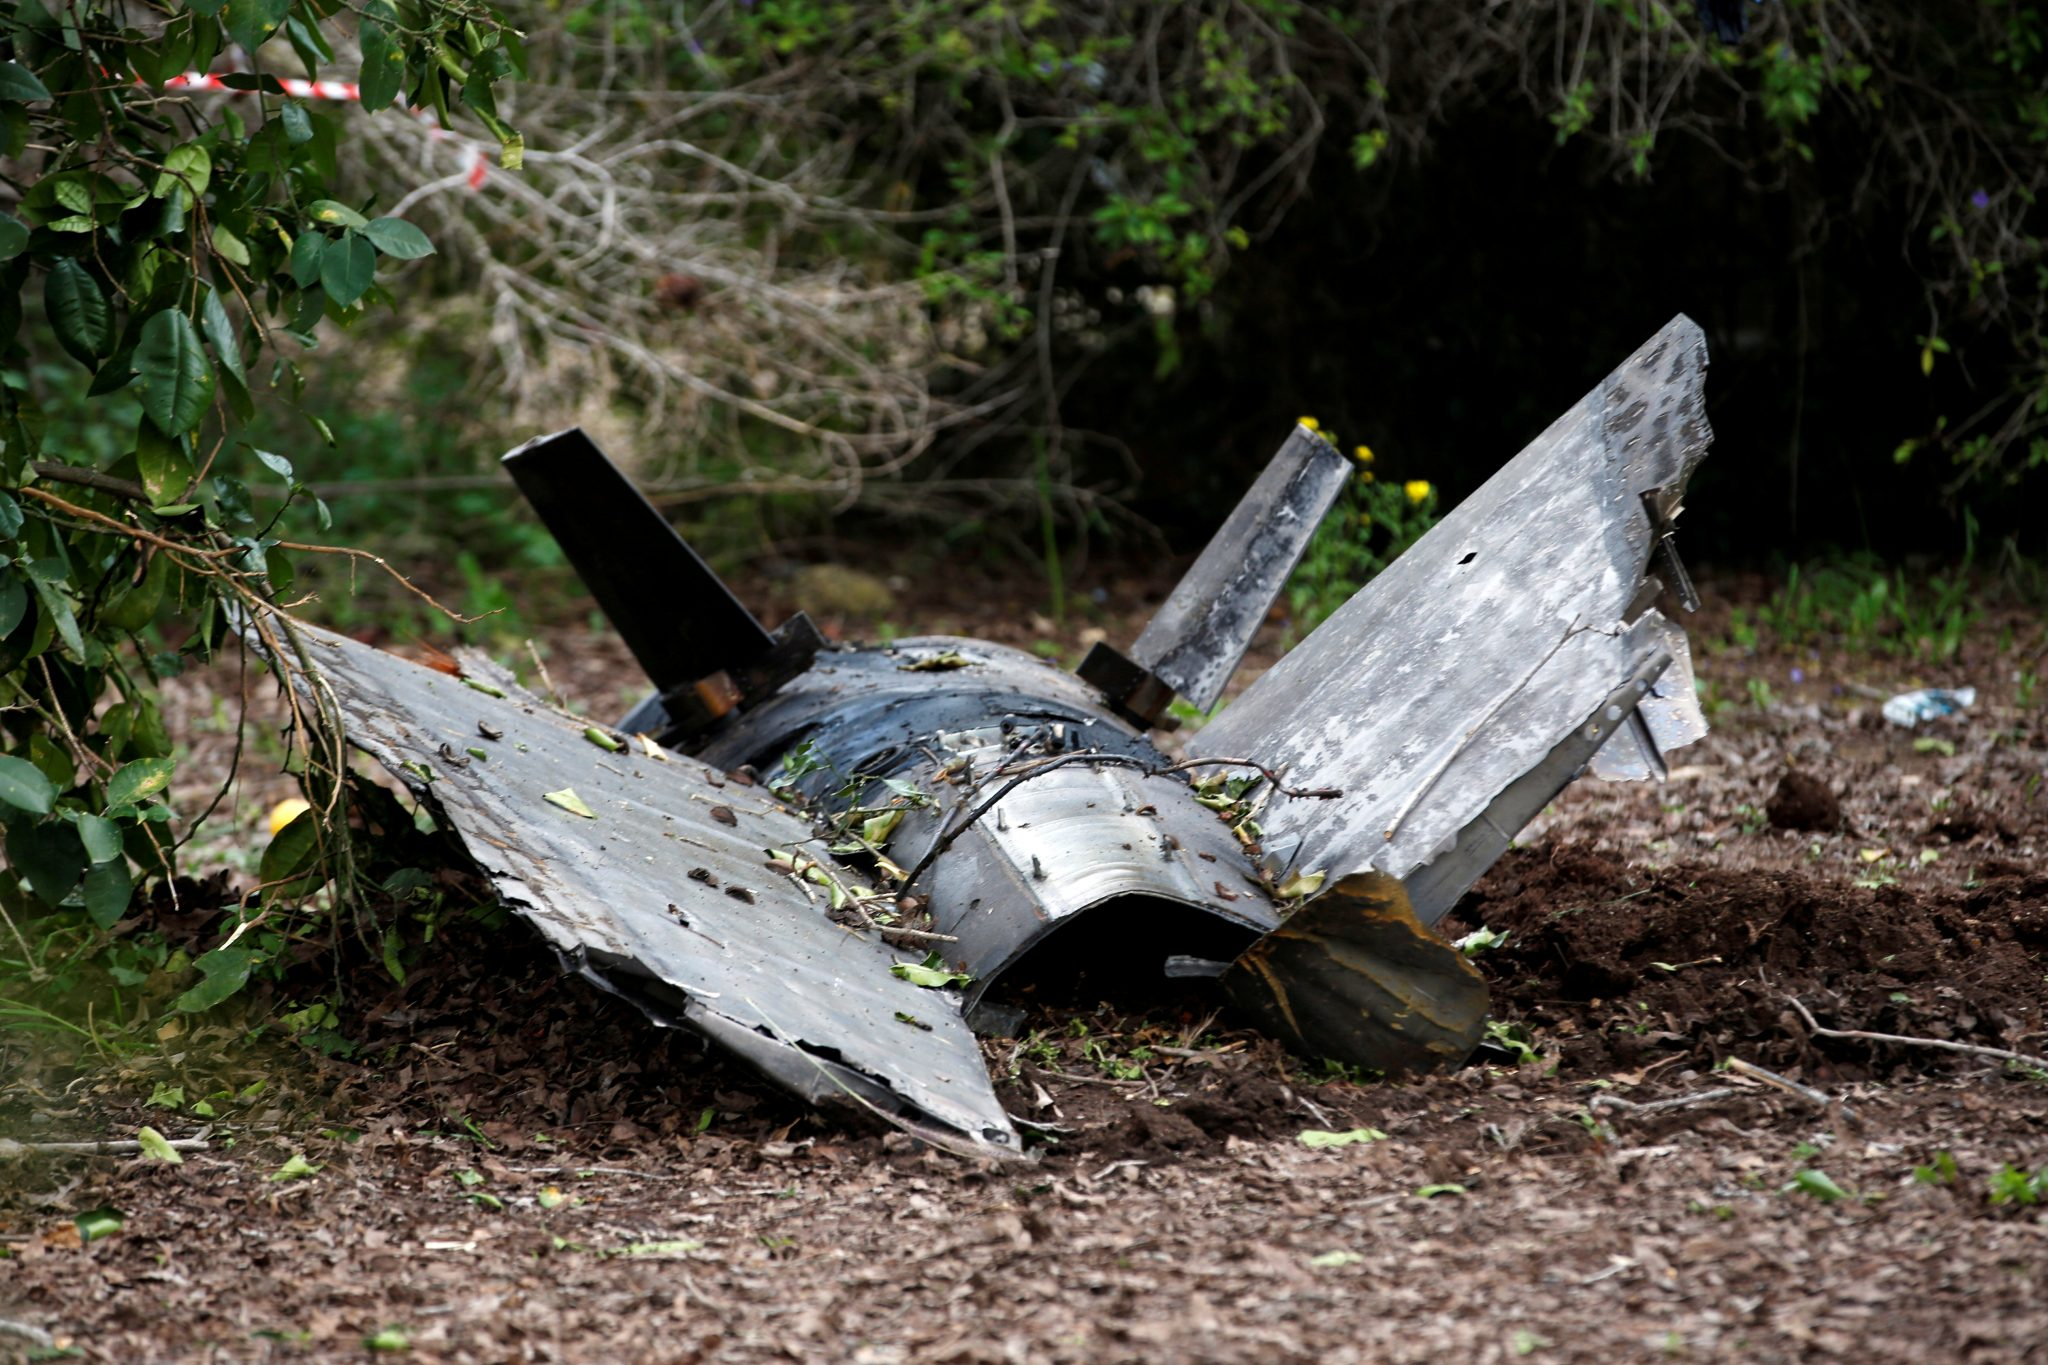 Israeli Air Force (IAF) targets Syrian air defense system, Iranian bases: Fragments of a Syrian anti-aircraft missile found in Alonei Abba, about 2 miles (3.2 km) from where the remains of a crashed F-16 Israeli war plane were found, at the village of Alonei Abba | REUTERS